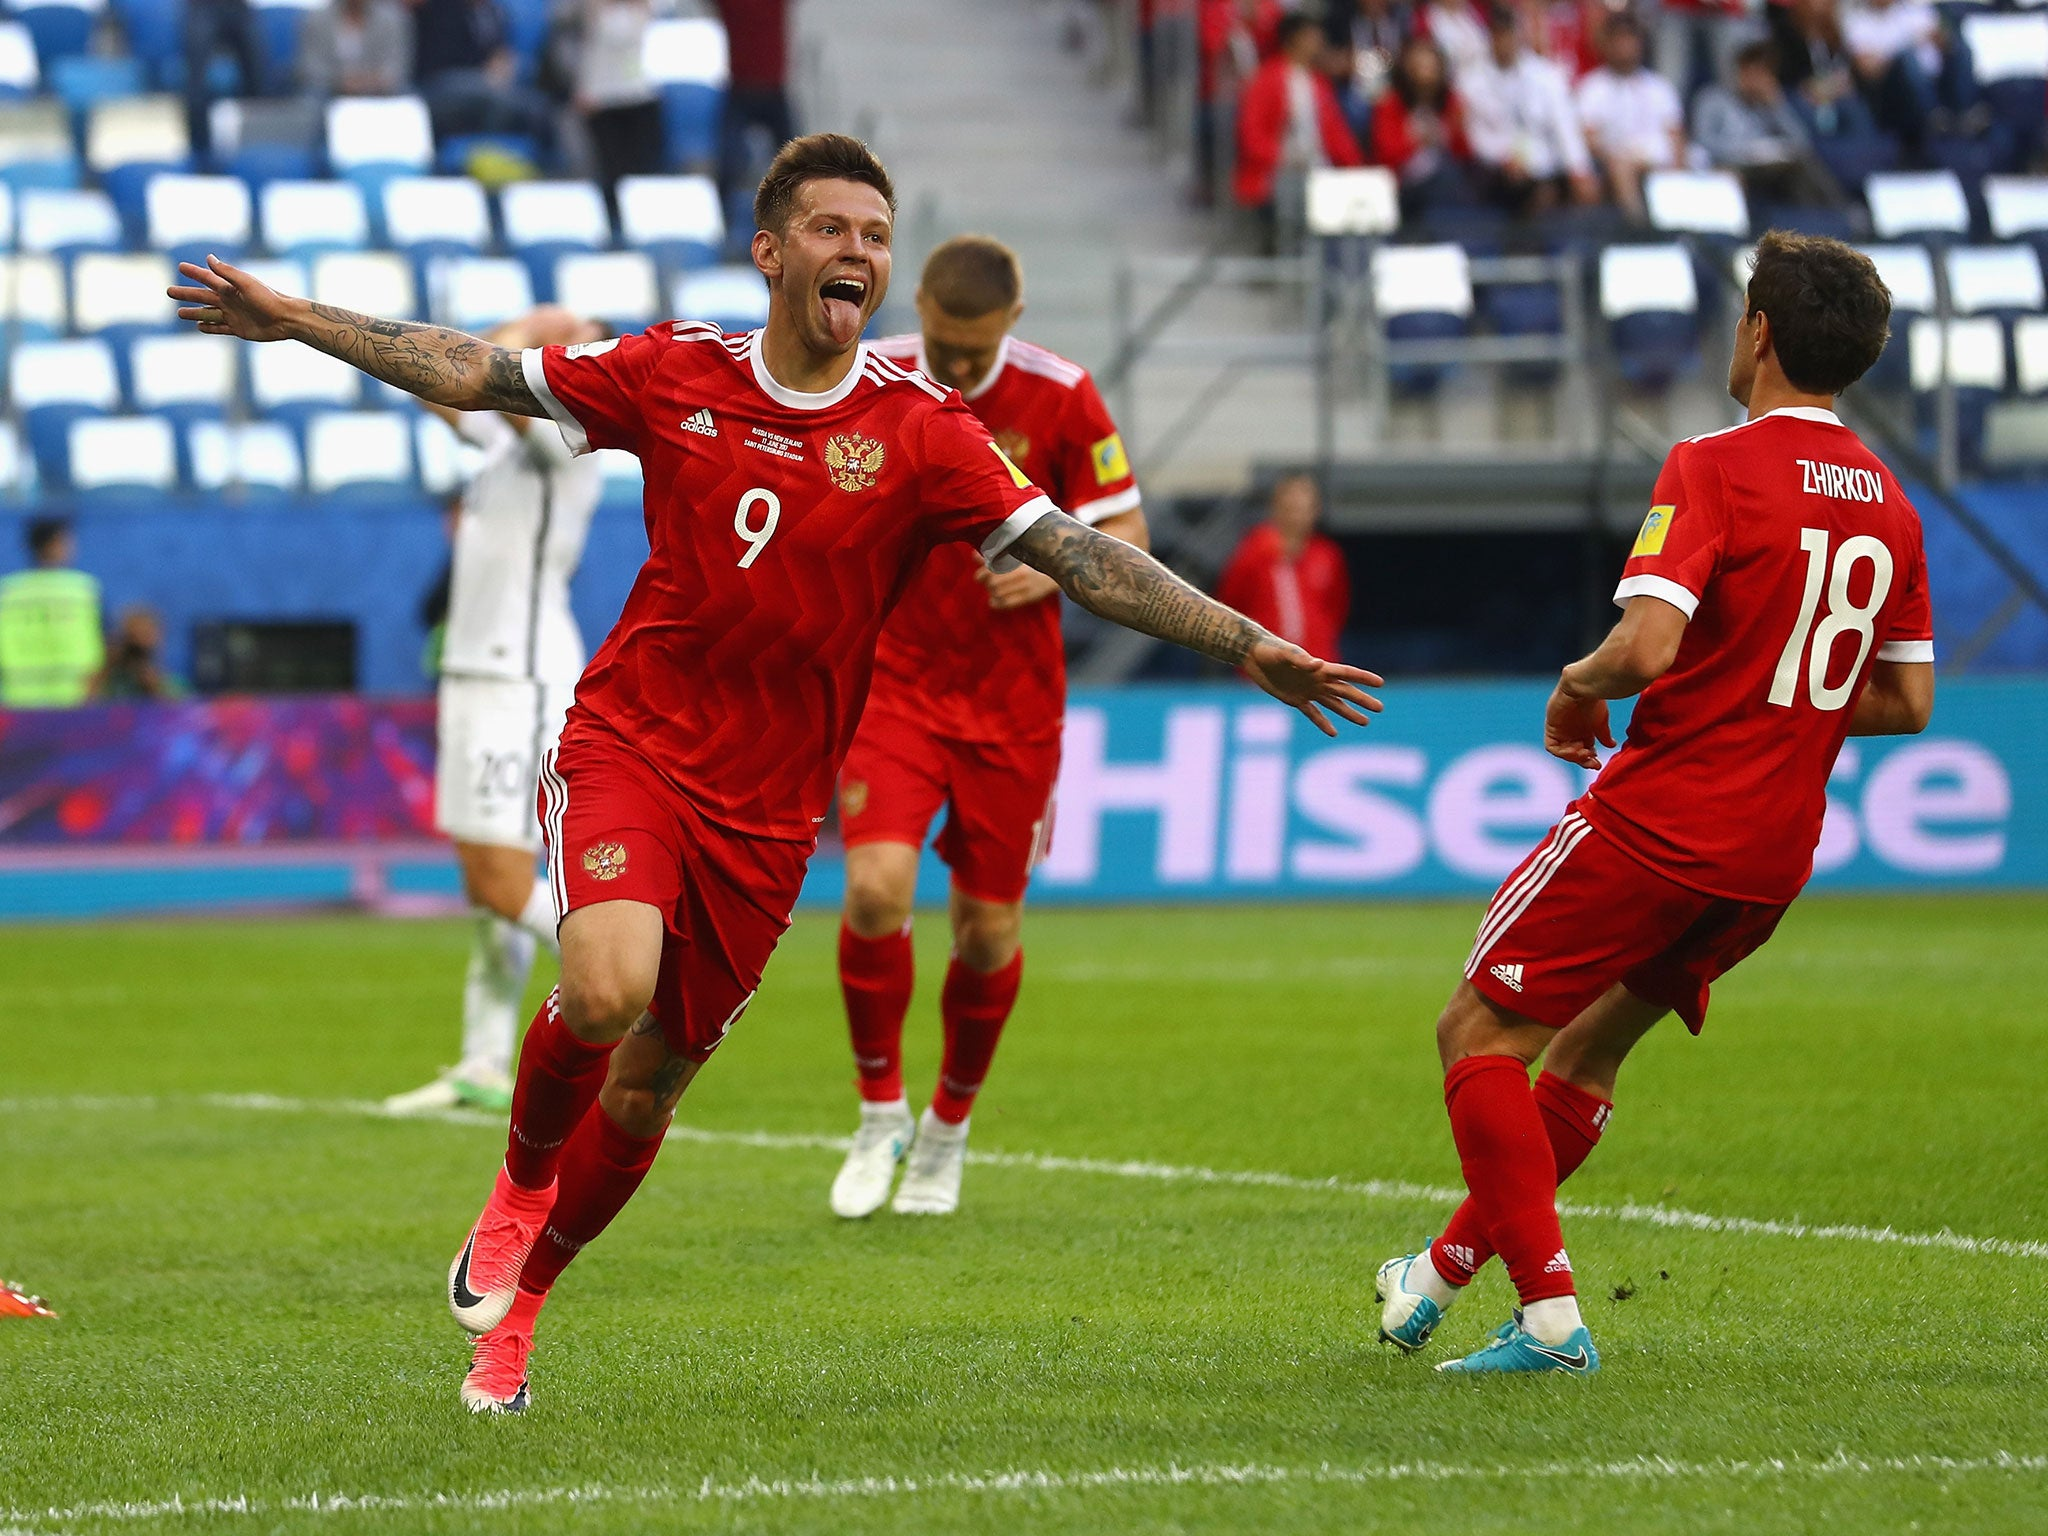 Hosts Russia beat New Zealand in comfortable Confederations Cup opener